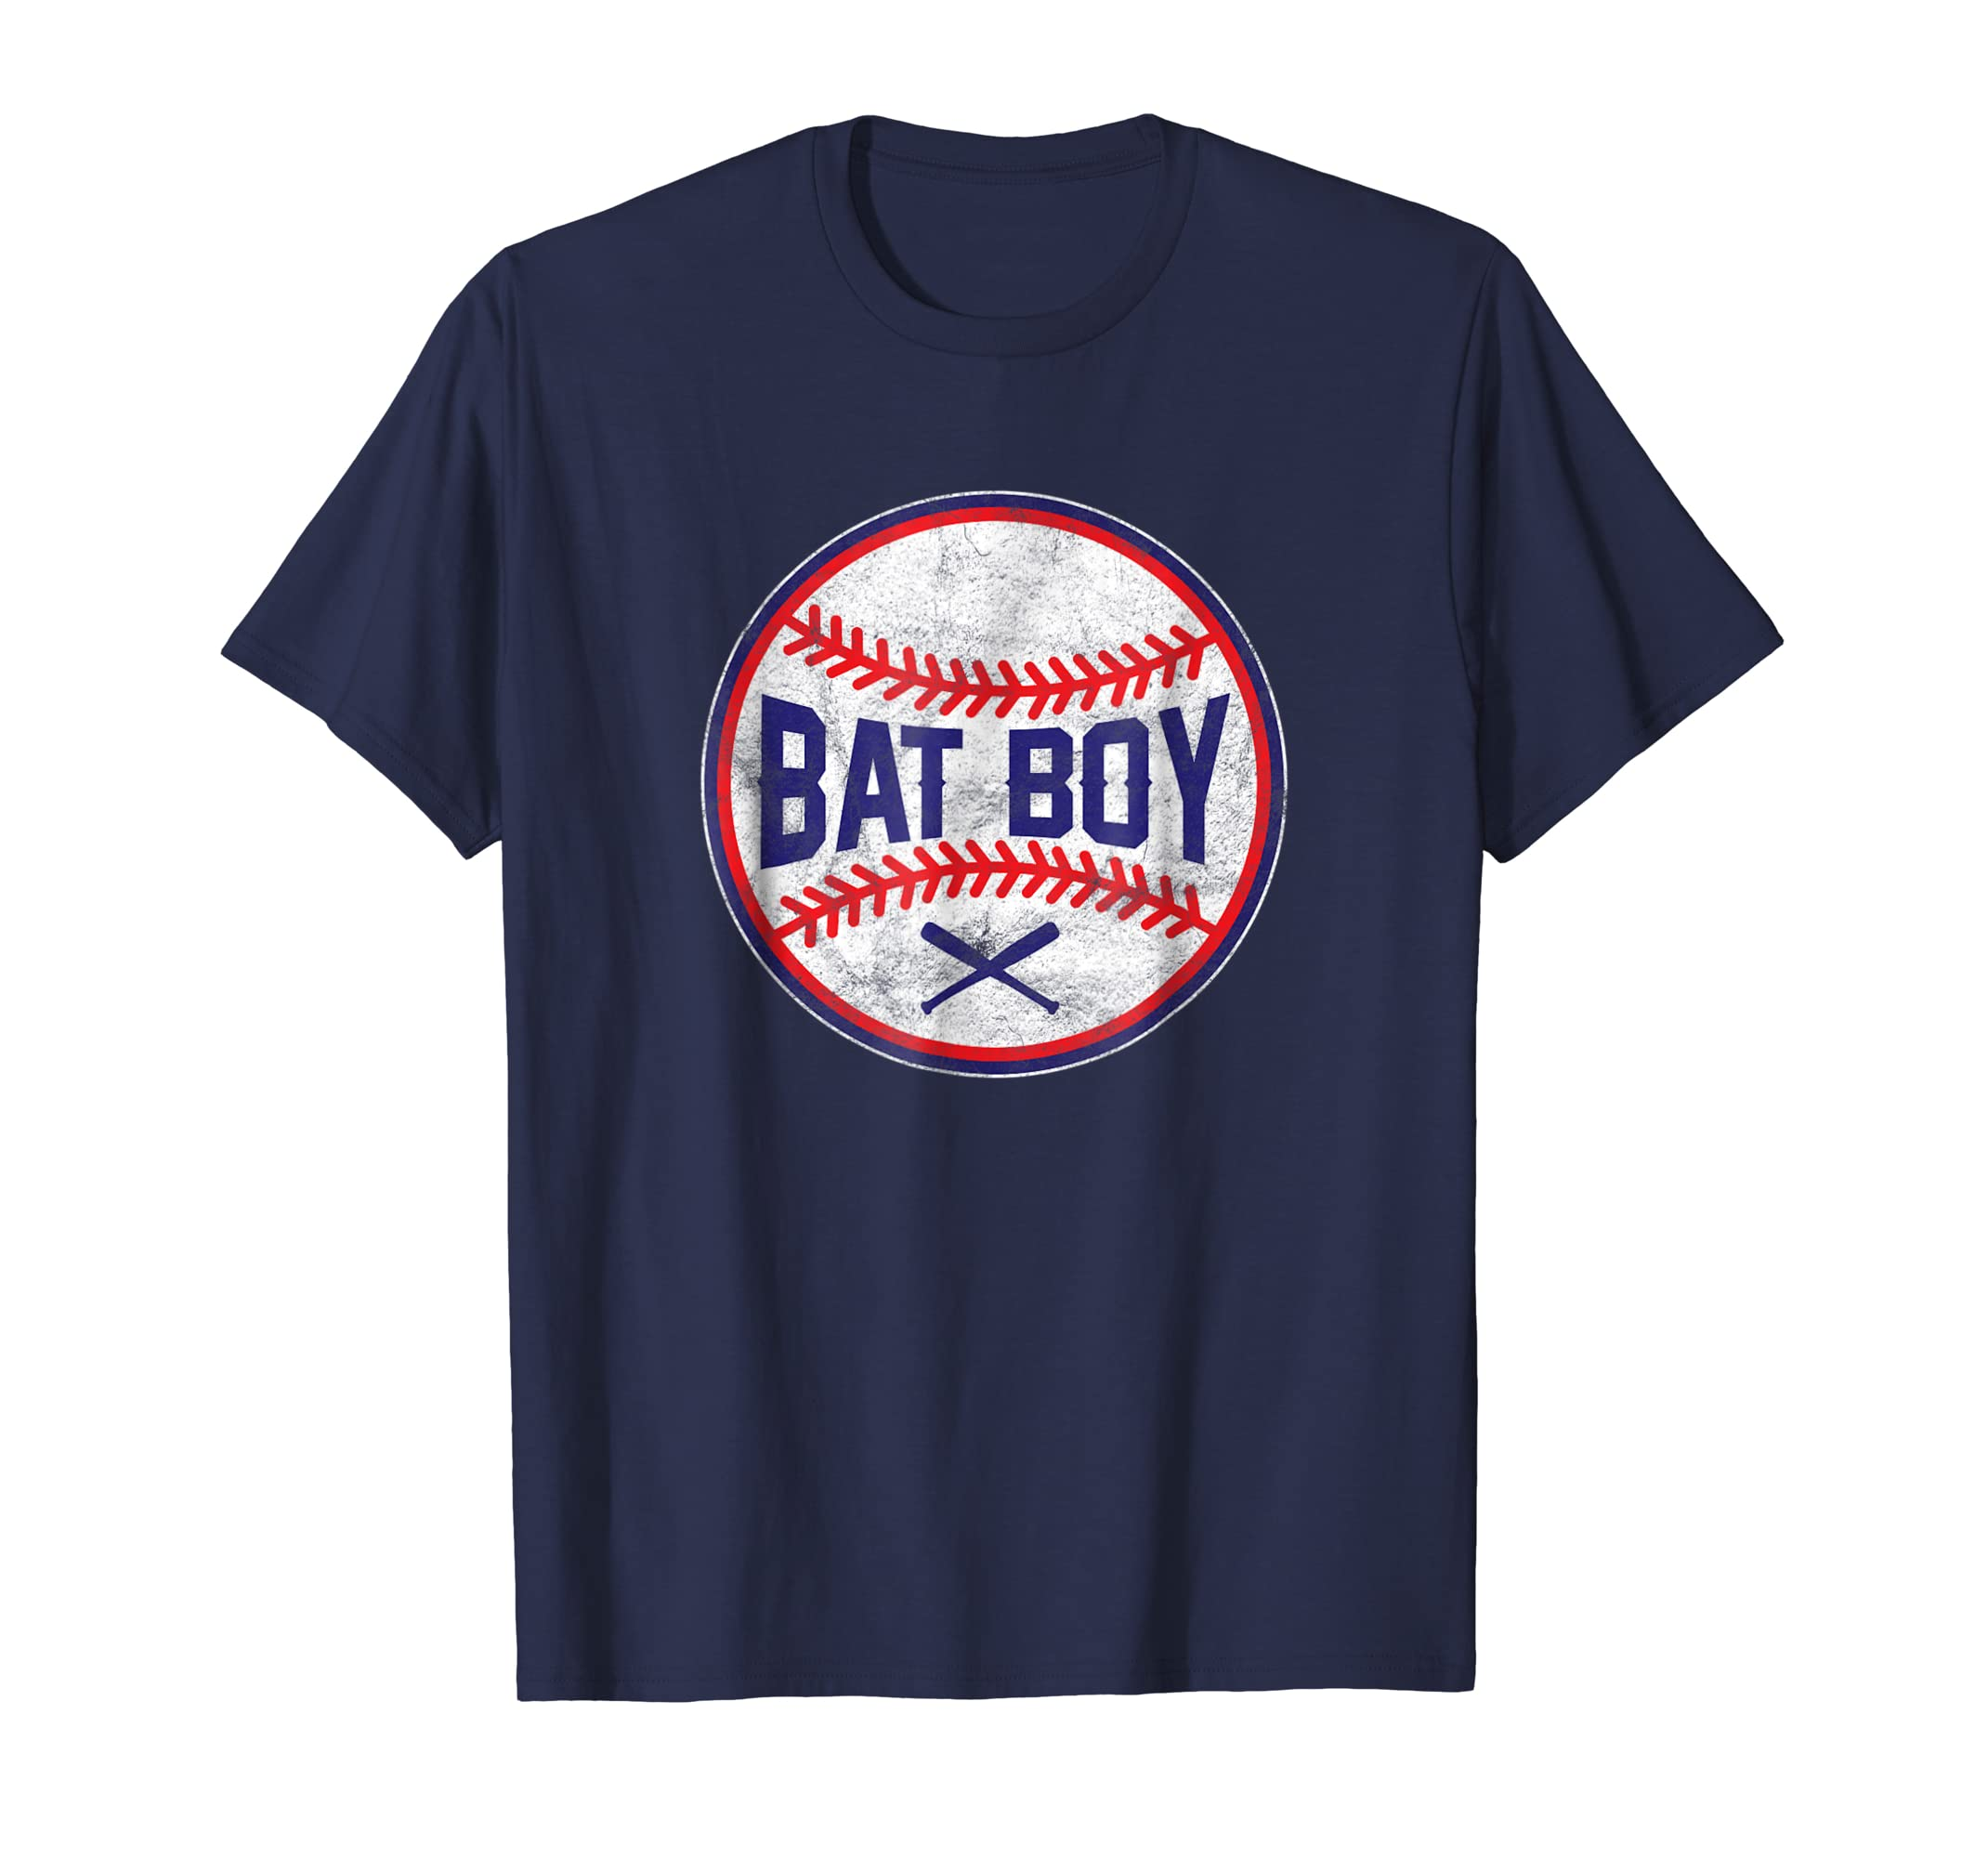 BAT BOY Baseball Positions team designer shirts-mt